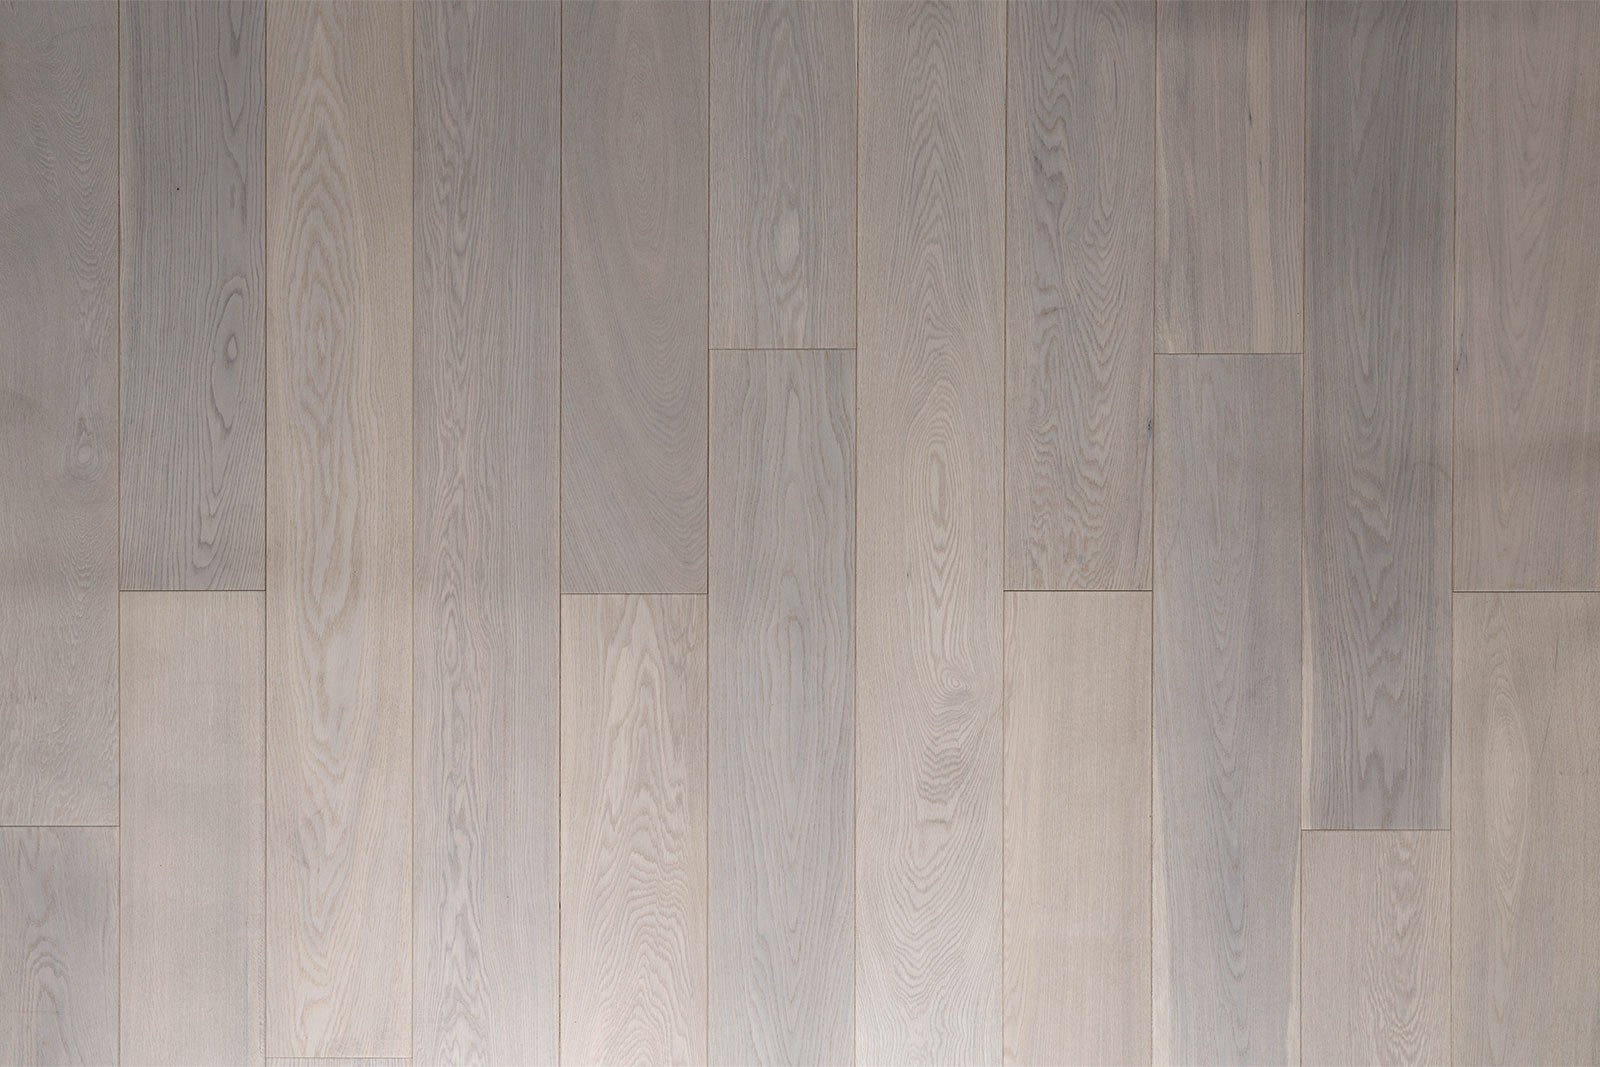 Vernal-White-Oiled-Swatch1-1600x1067